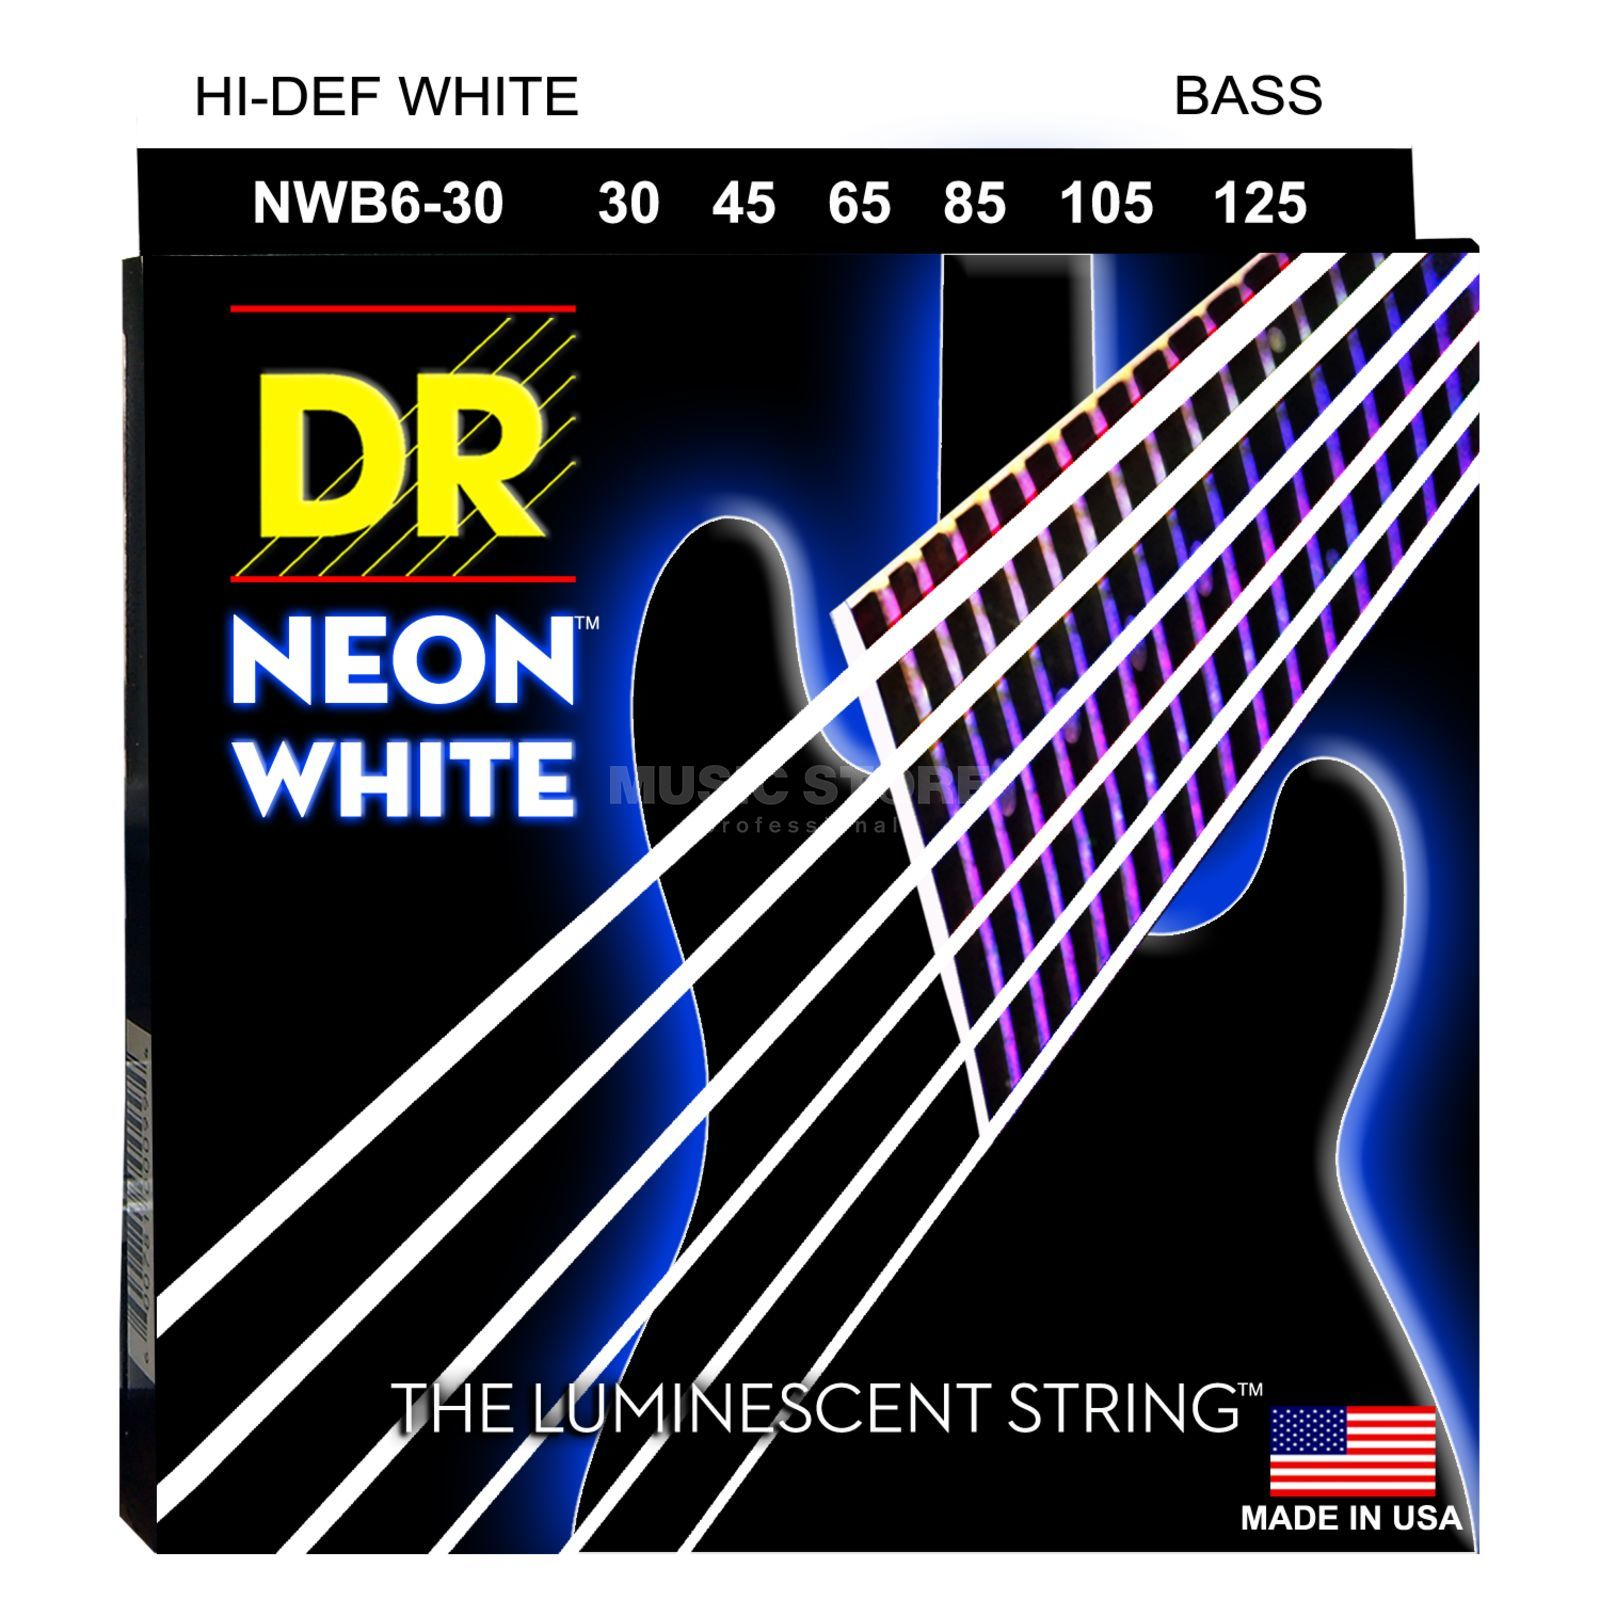 DR 6er bas 30-125 Hi-Def neon wit neon NWB6-30 Productafbeelding